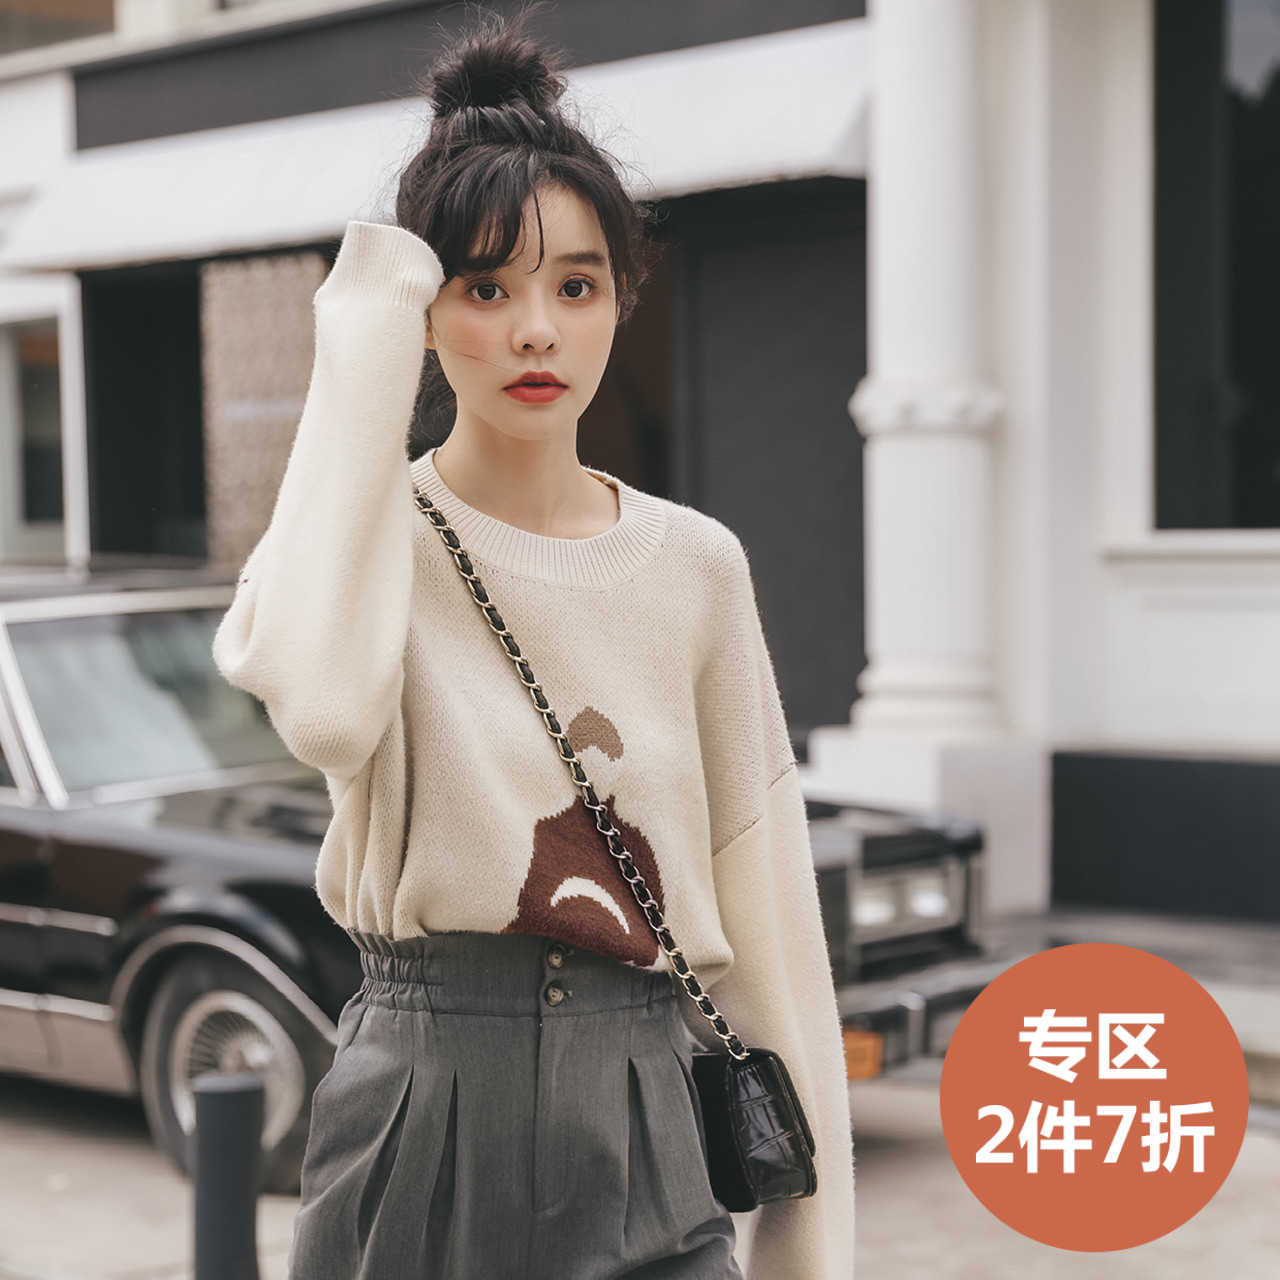 Graphic cartoon T-shirt autumn and winter 2019 new womens lazy long sleeve Korean loose and versatile thin top sweater